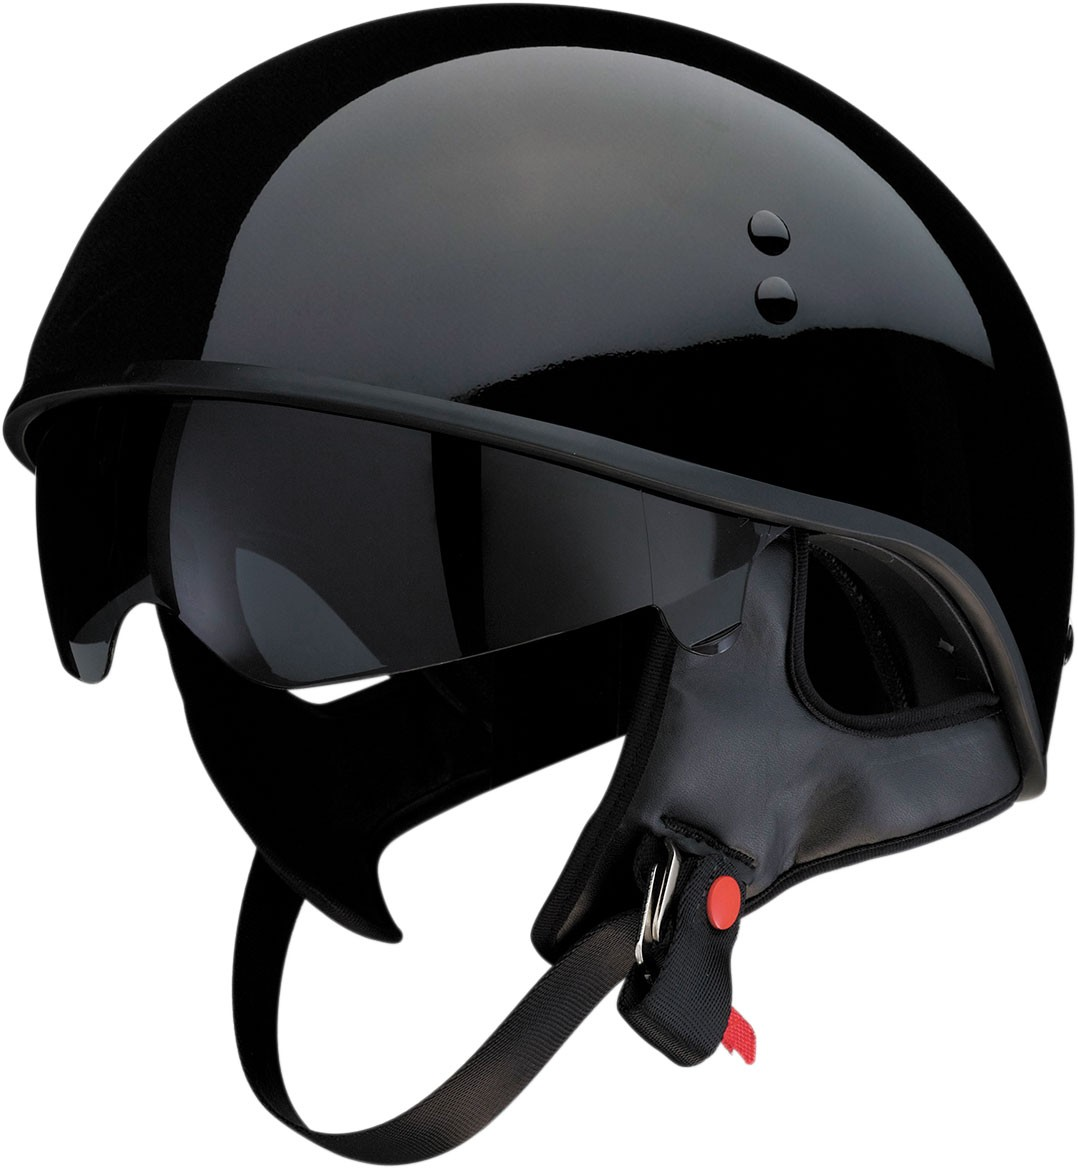 Z1R VAGRANT Half Helmet w/ Dropdown Sun Visor (Gloss Black)